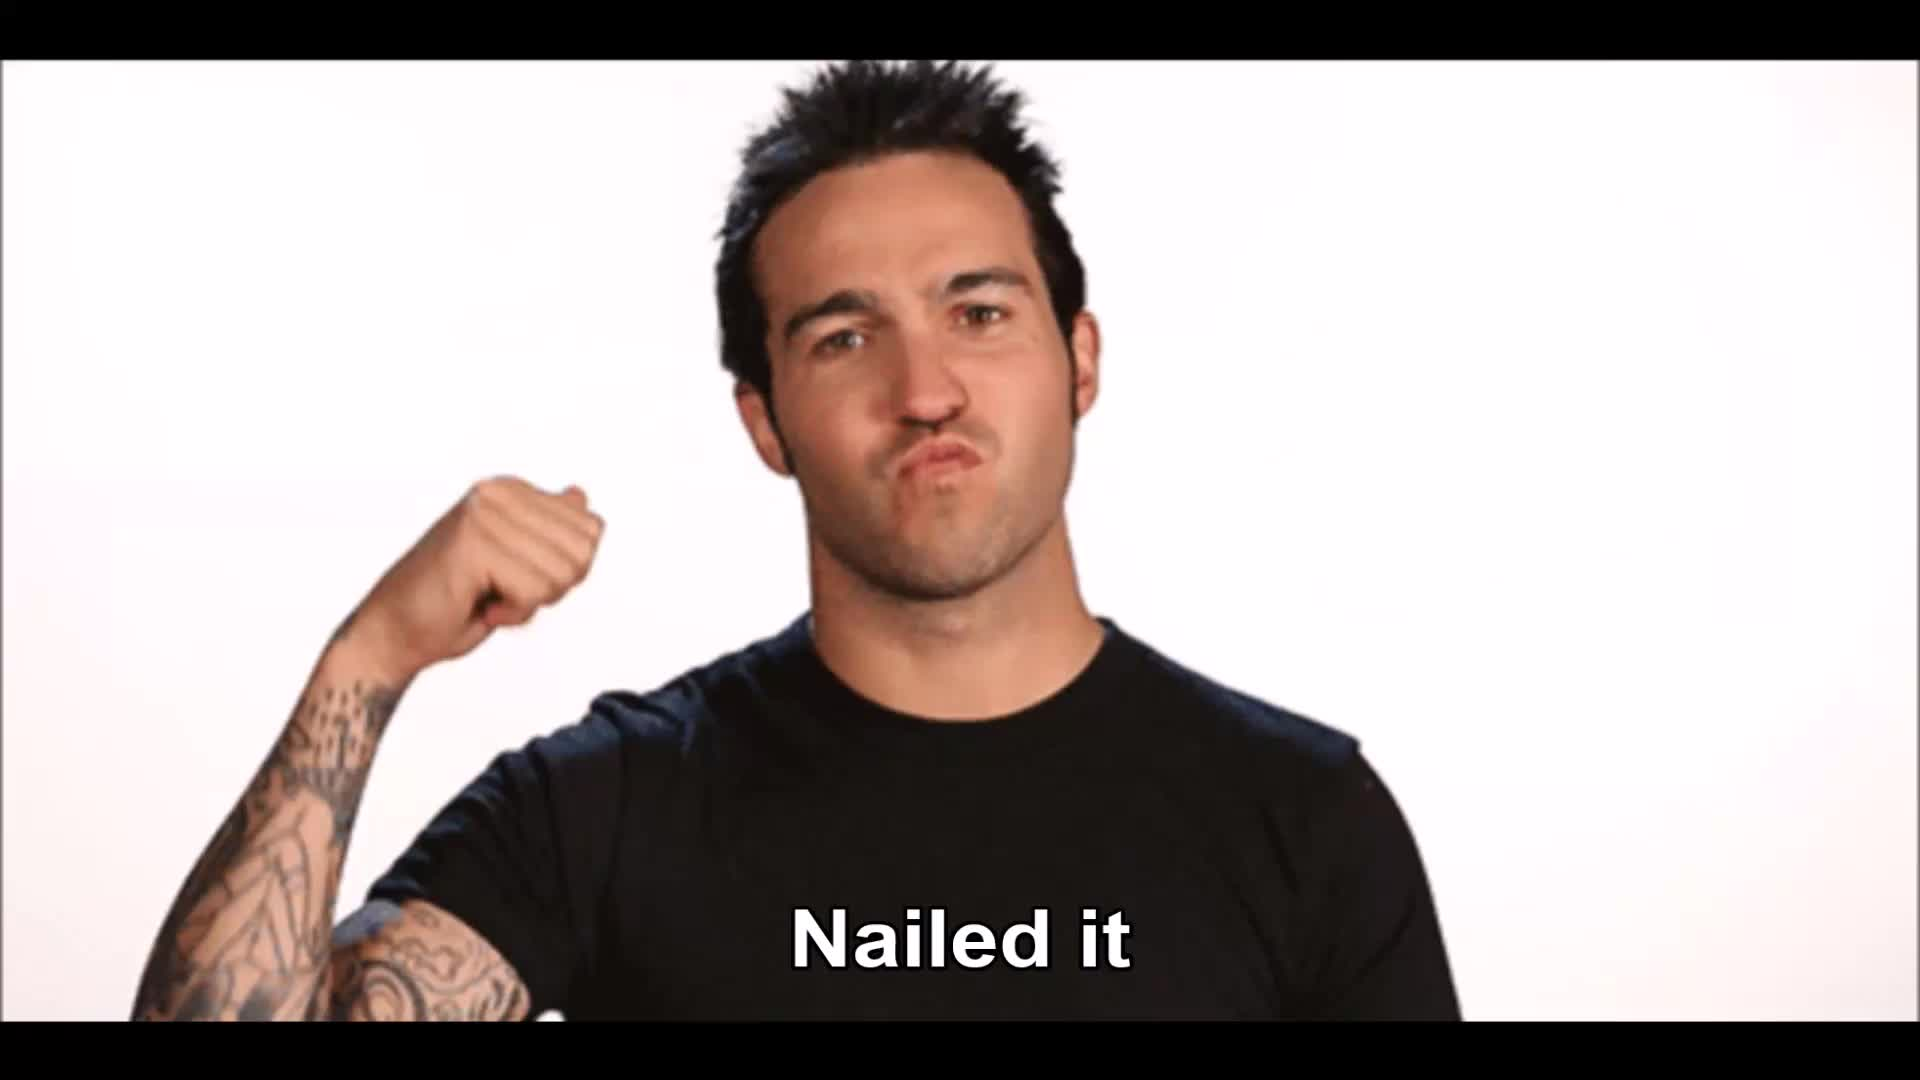 nailed it, pete wentz, Pete Wentz Nailed it GIFs